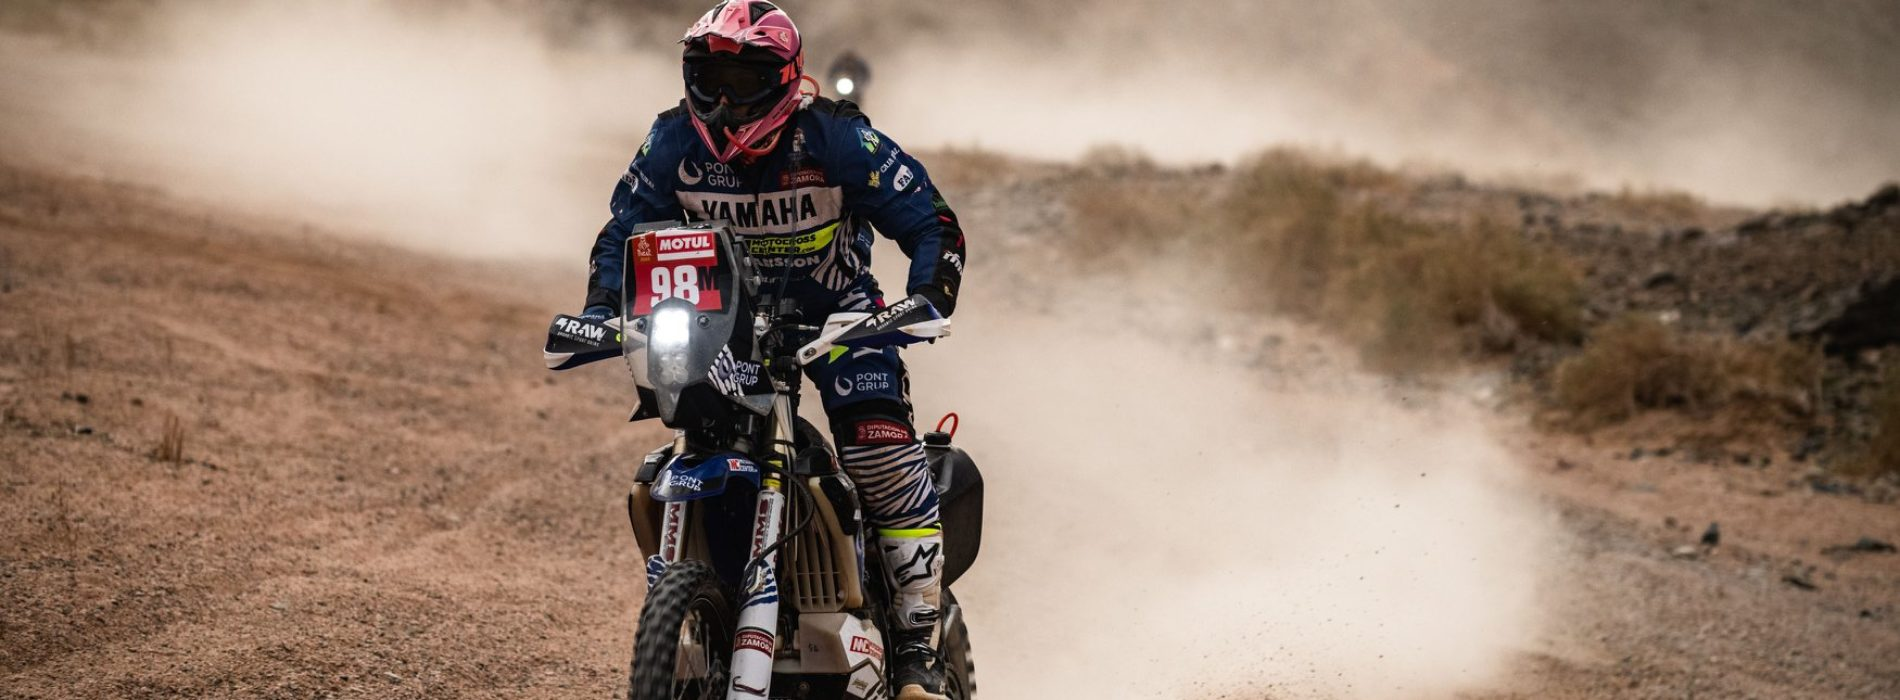 MXLink Live speaks with Sara Garcia on 'what it takes to race Dakar Rally in 'Unassisted' category